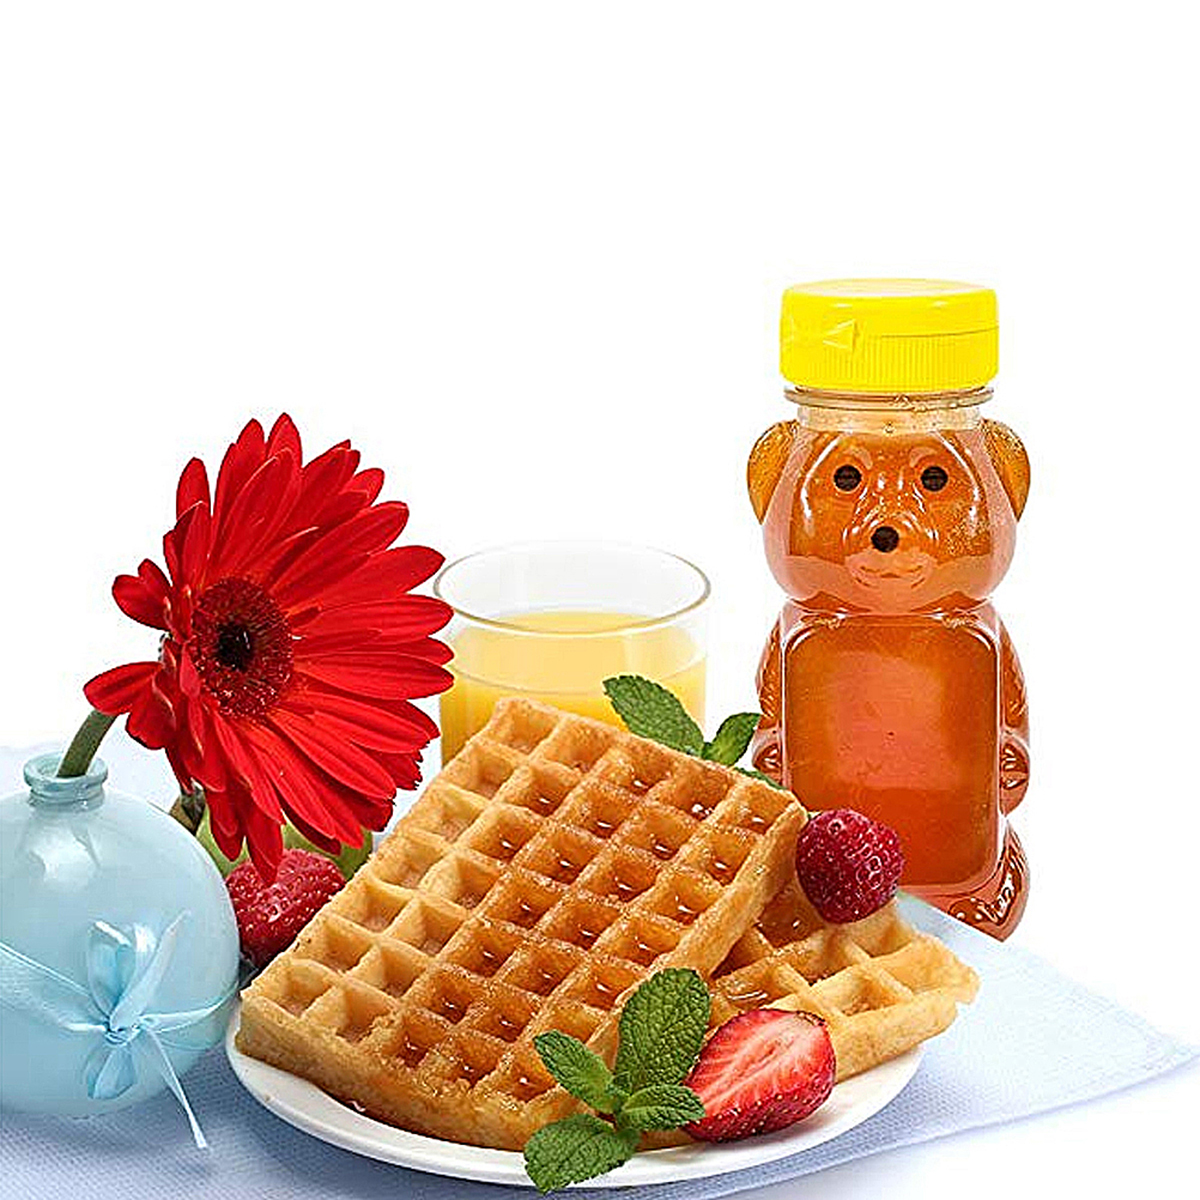 12pcs 240ml Plastic Squeeze Condiment Bottles Bear Shape Honey Sauce Mustard Jam Dispenser